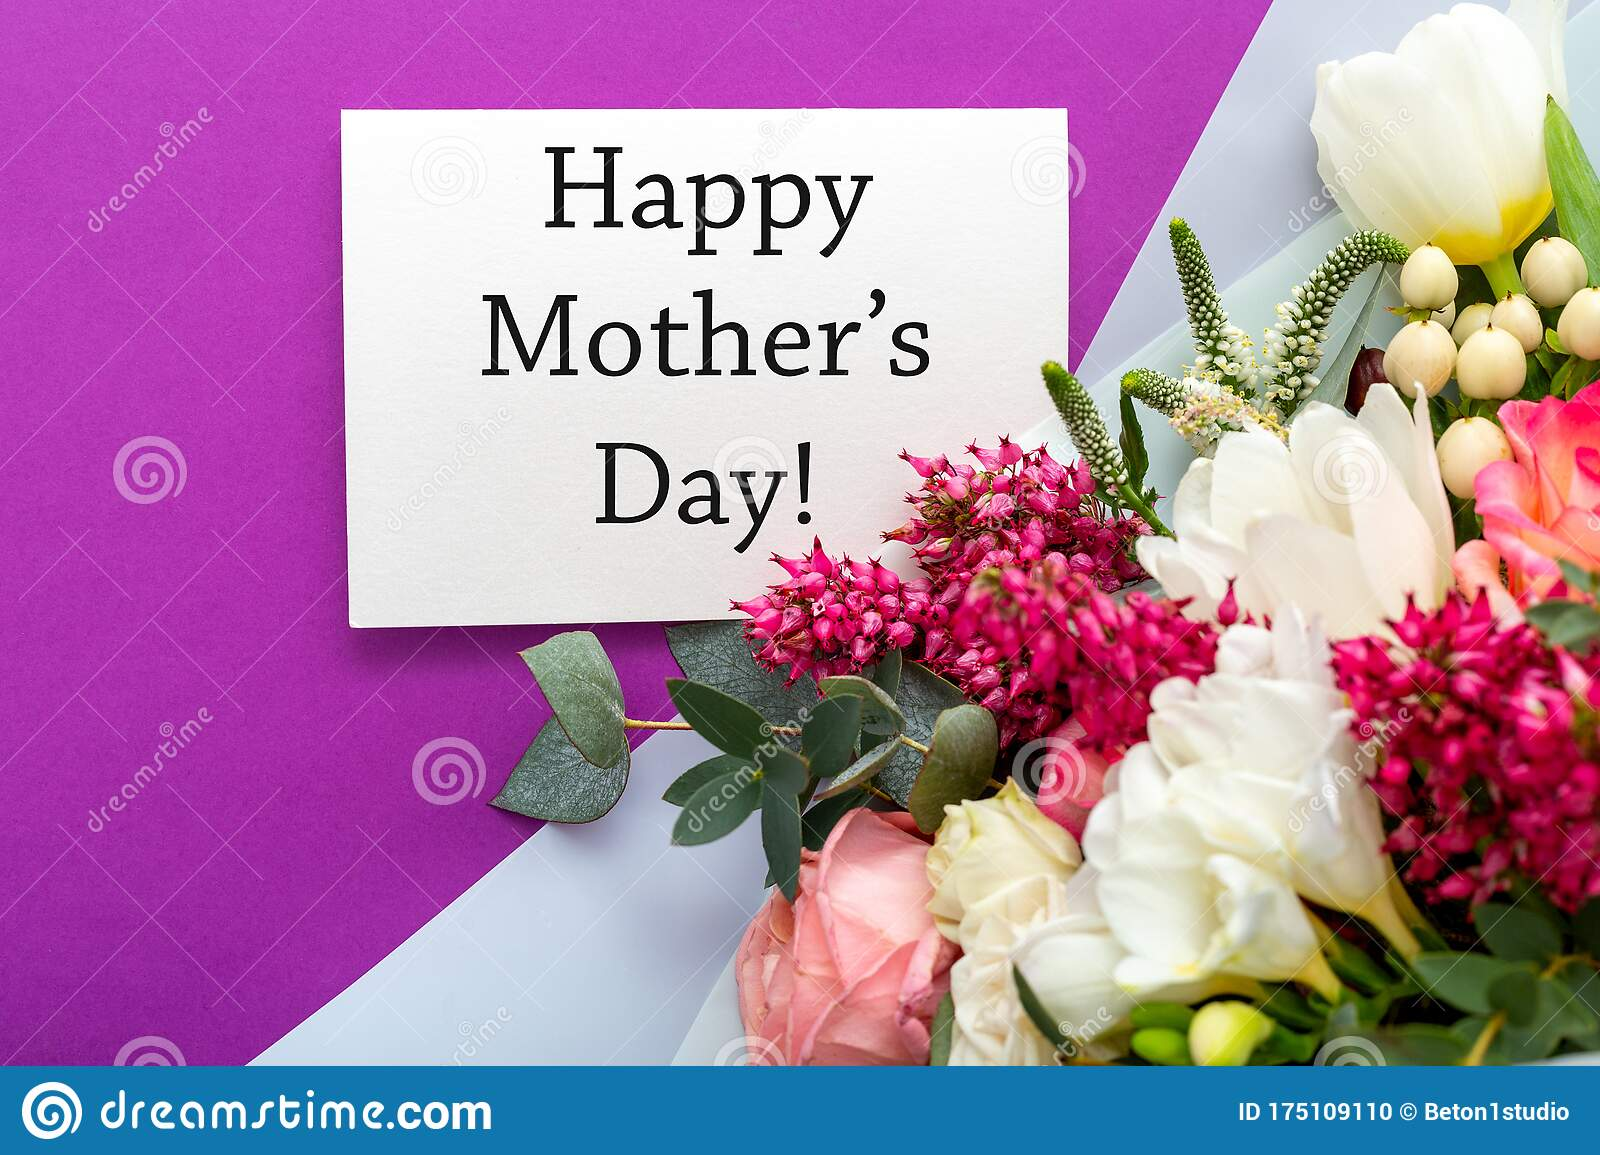 Happy Mothers Day Text On Gift Card With Flower Bouquet Of Roses Tulips Eucalyptus On Purple Background Greeting Card For Mom Stock Photo Image Of Mother Card 175109110